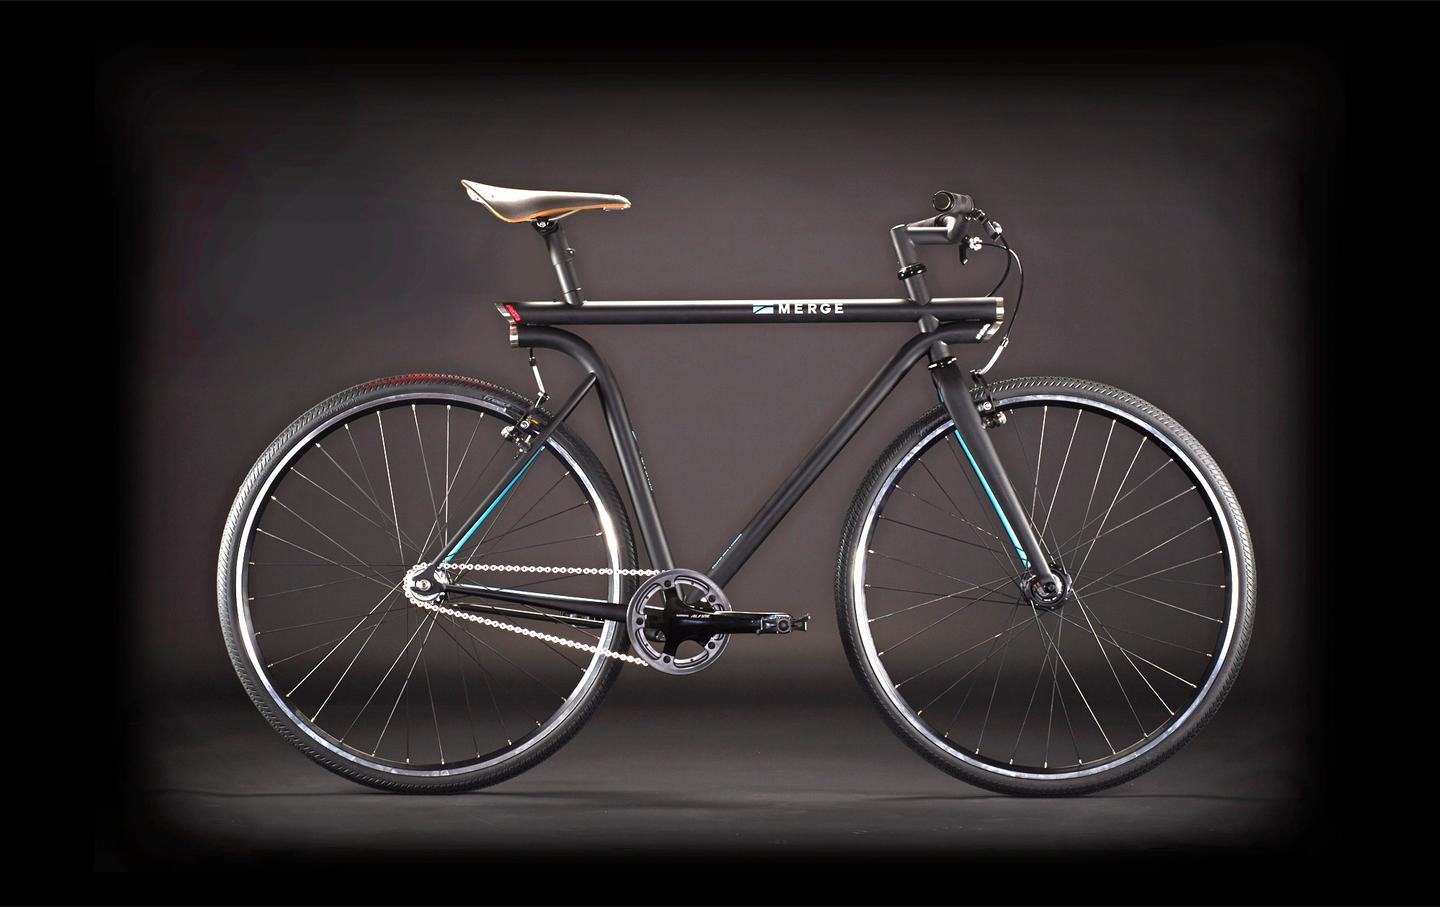 Pensa/Horse Cycle's Merge is designed for the mean streets of New York City